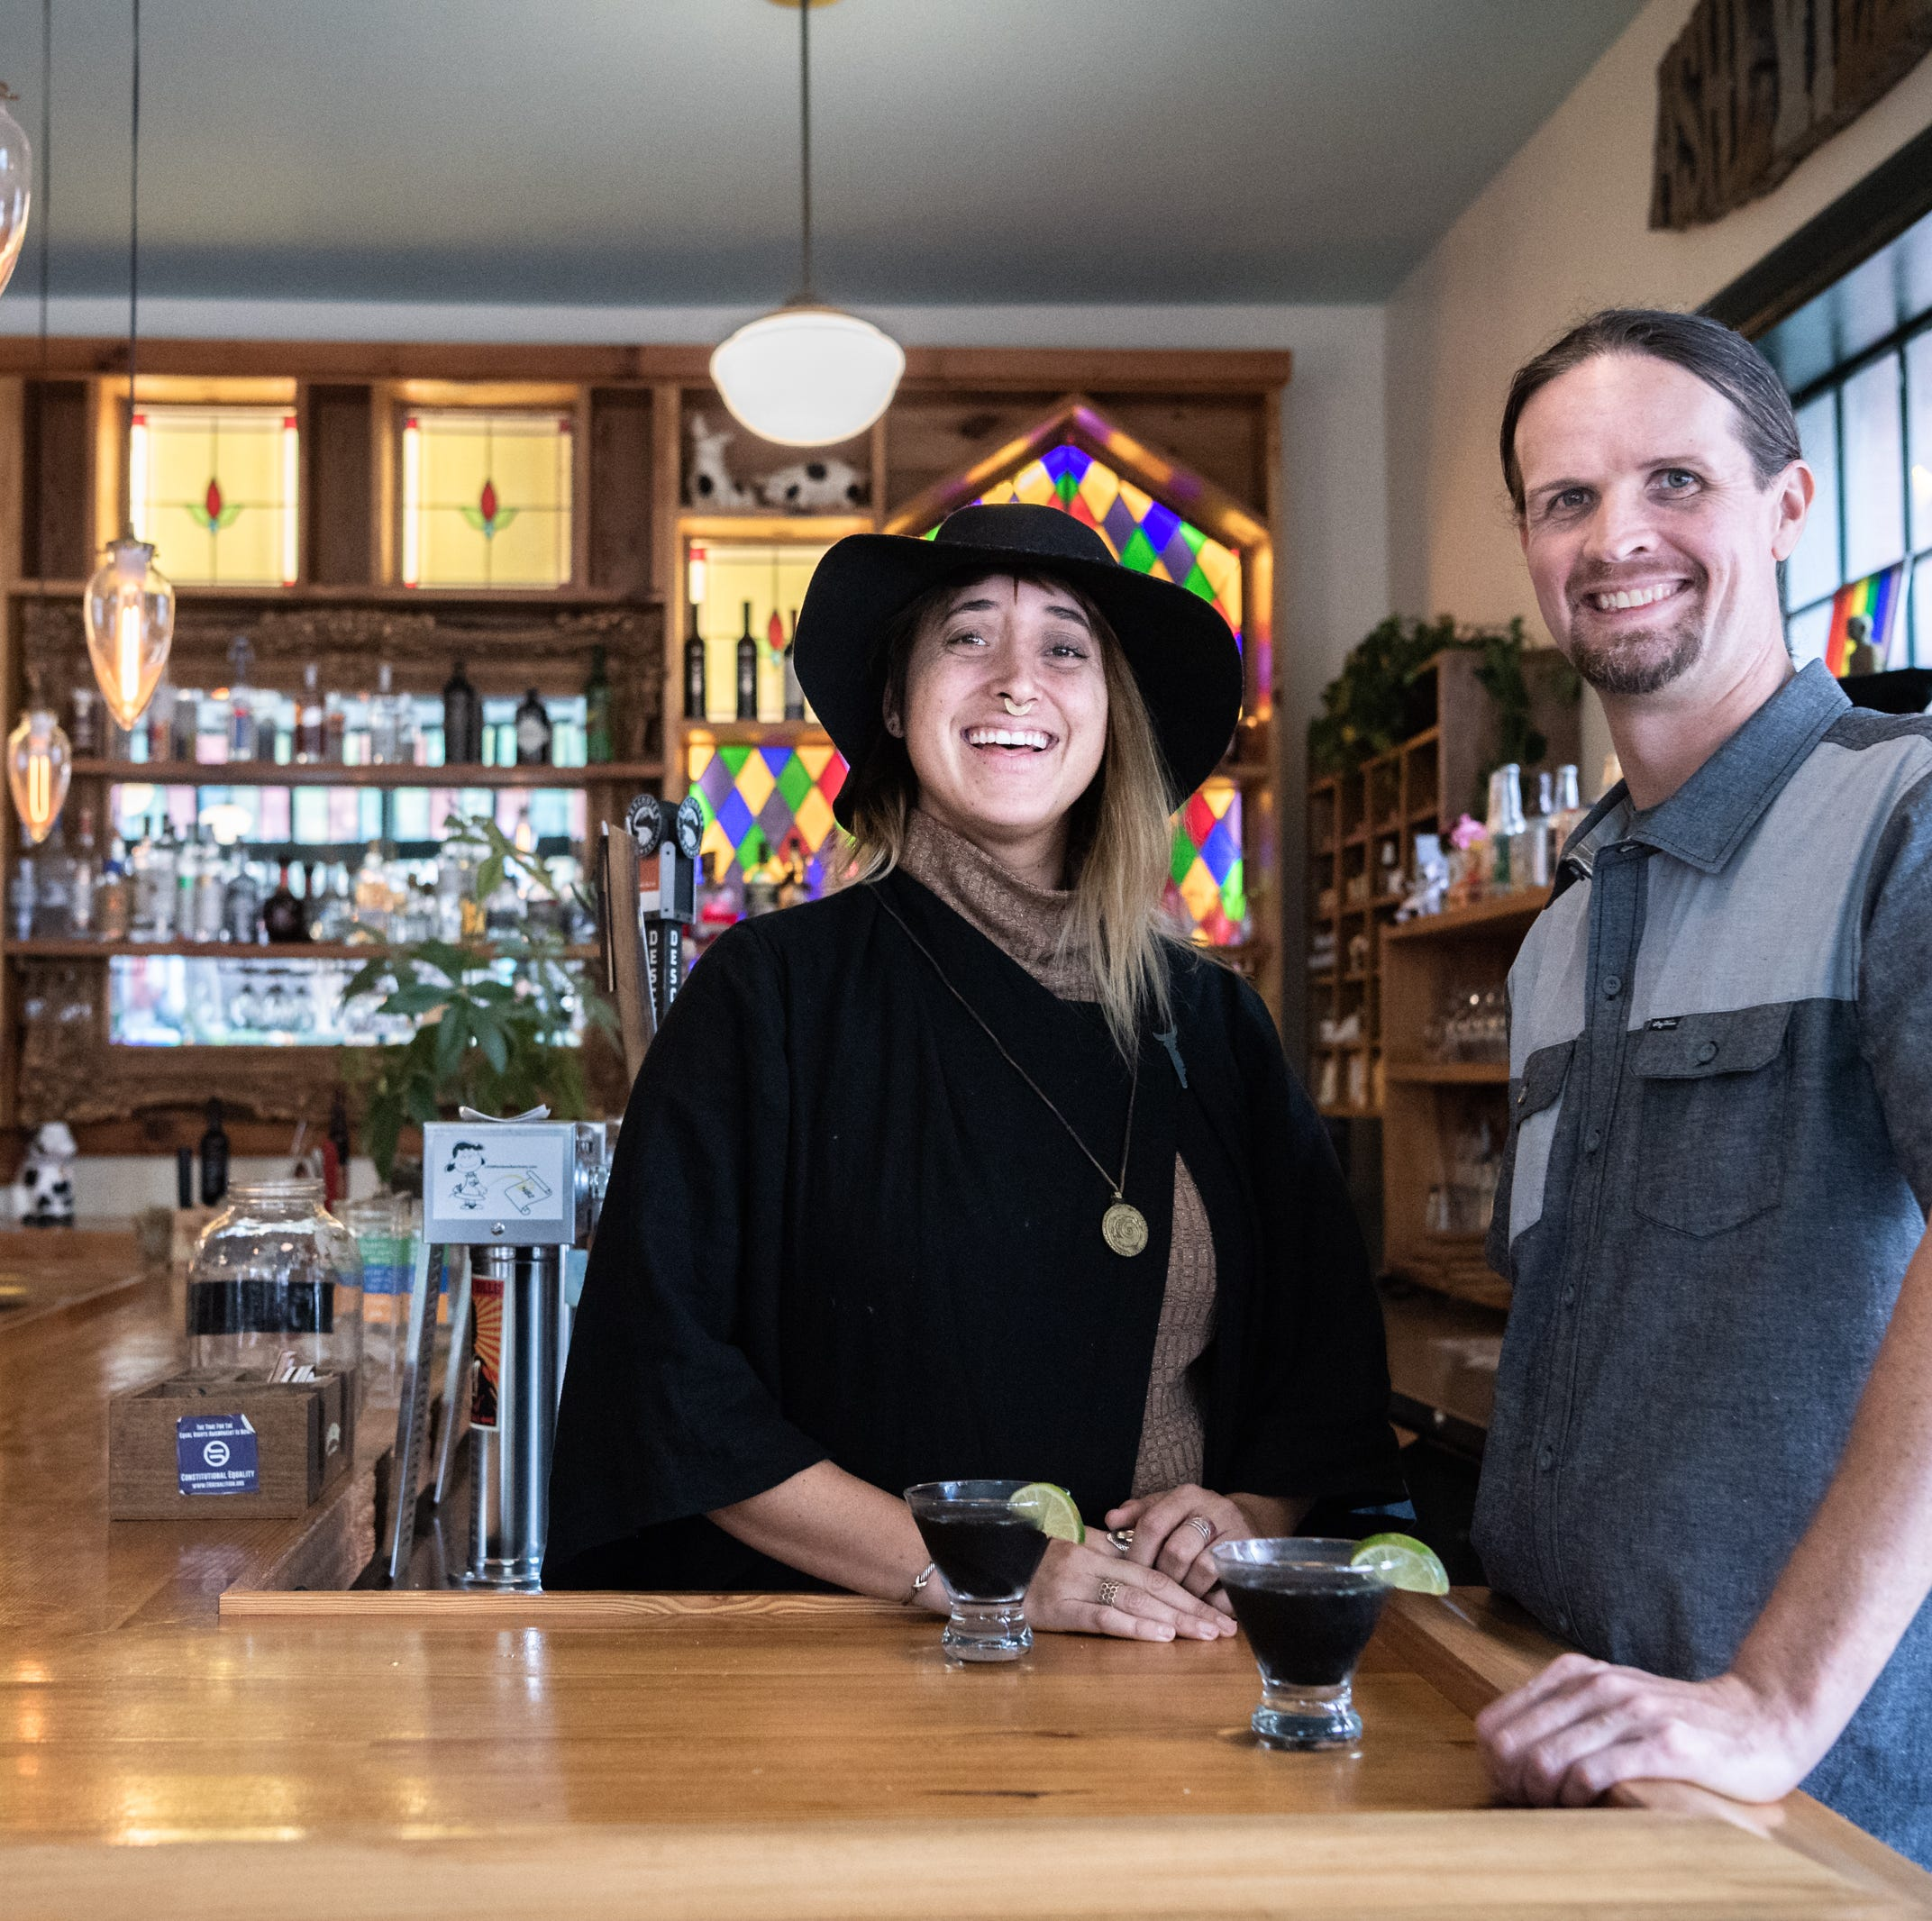 Forthcoming West Asheville CBD dispensary adds to booze-free 'third places'